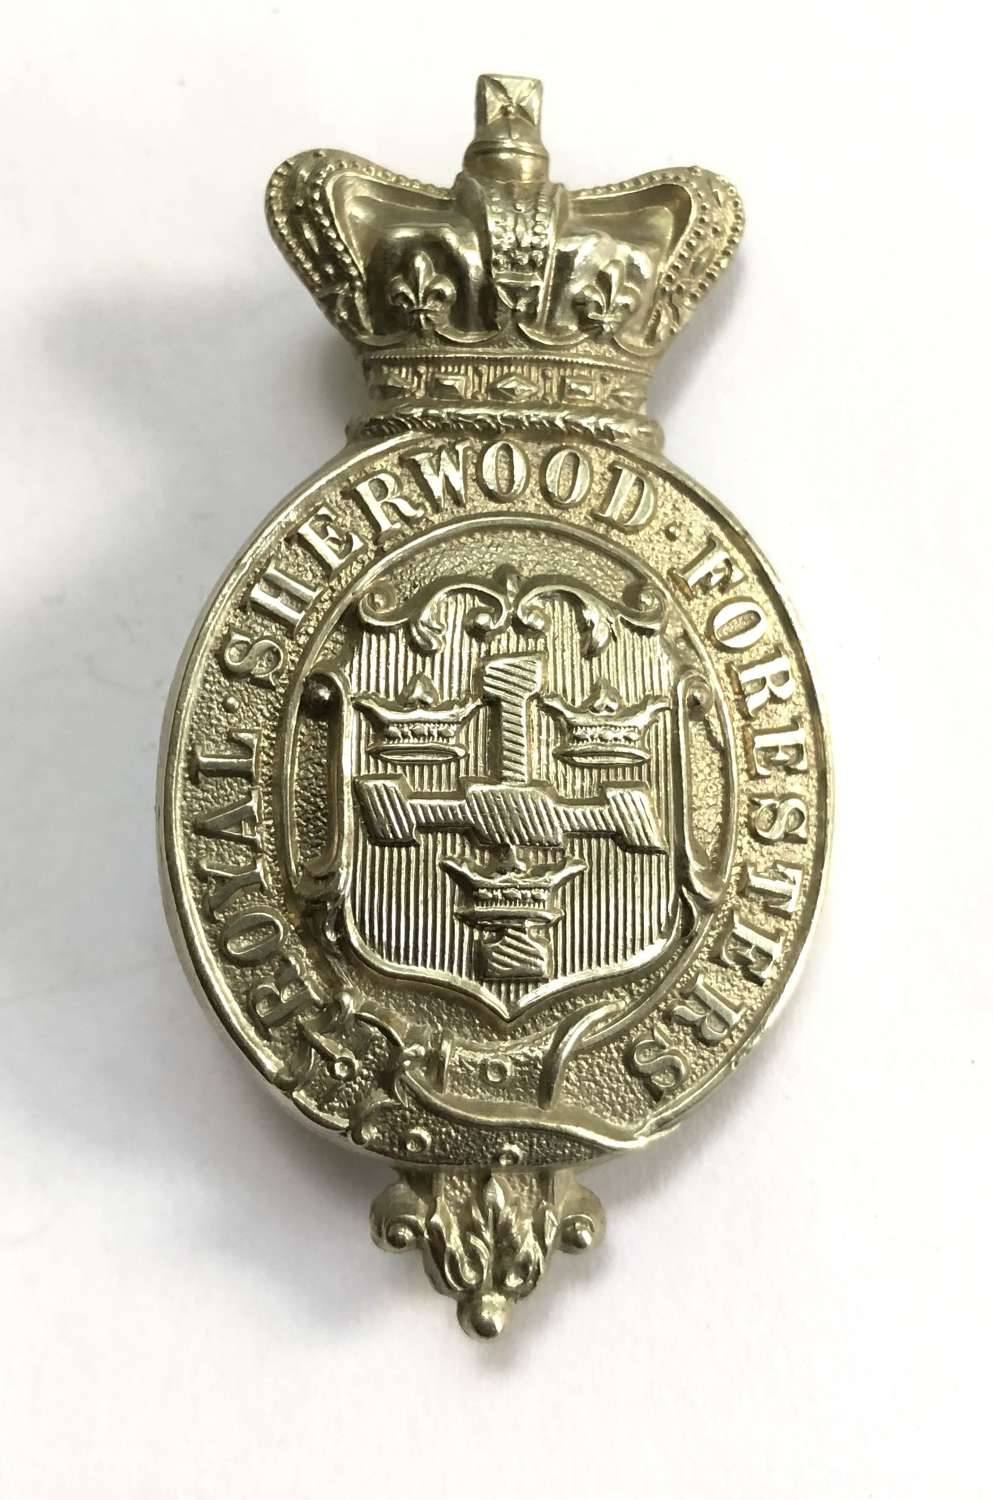 Royal Sherwood Foresters Victorian militia glengarry badge c1874-81